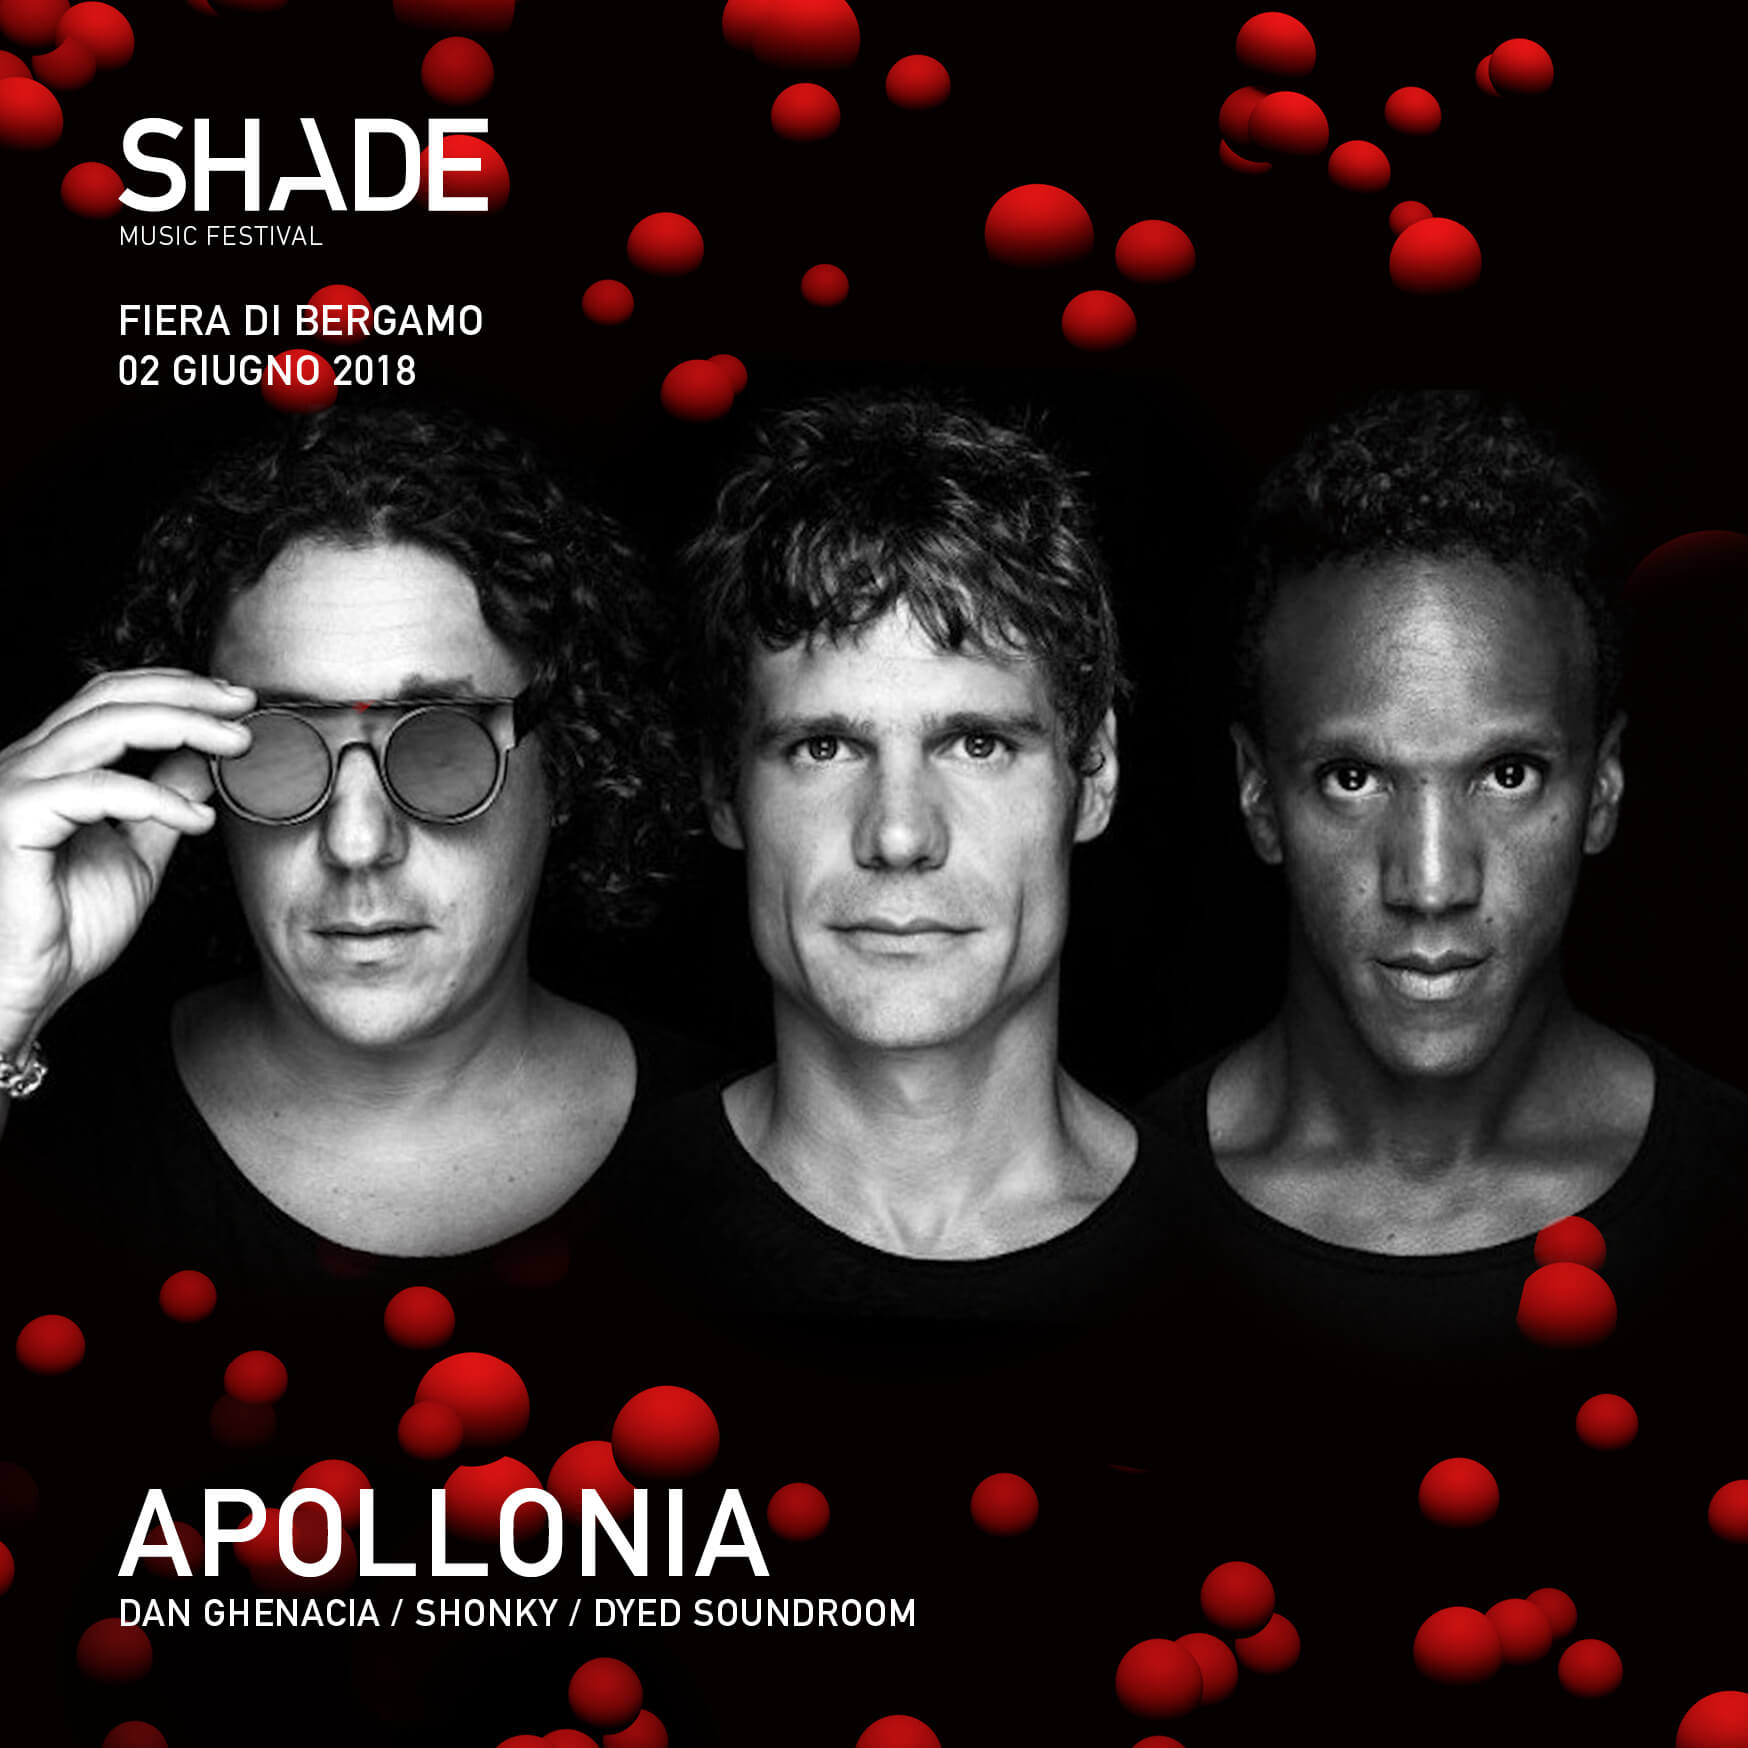 apollonia shade music festival